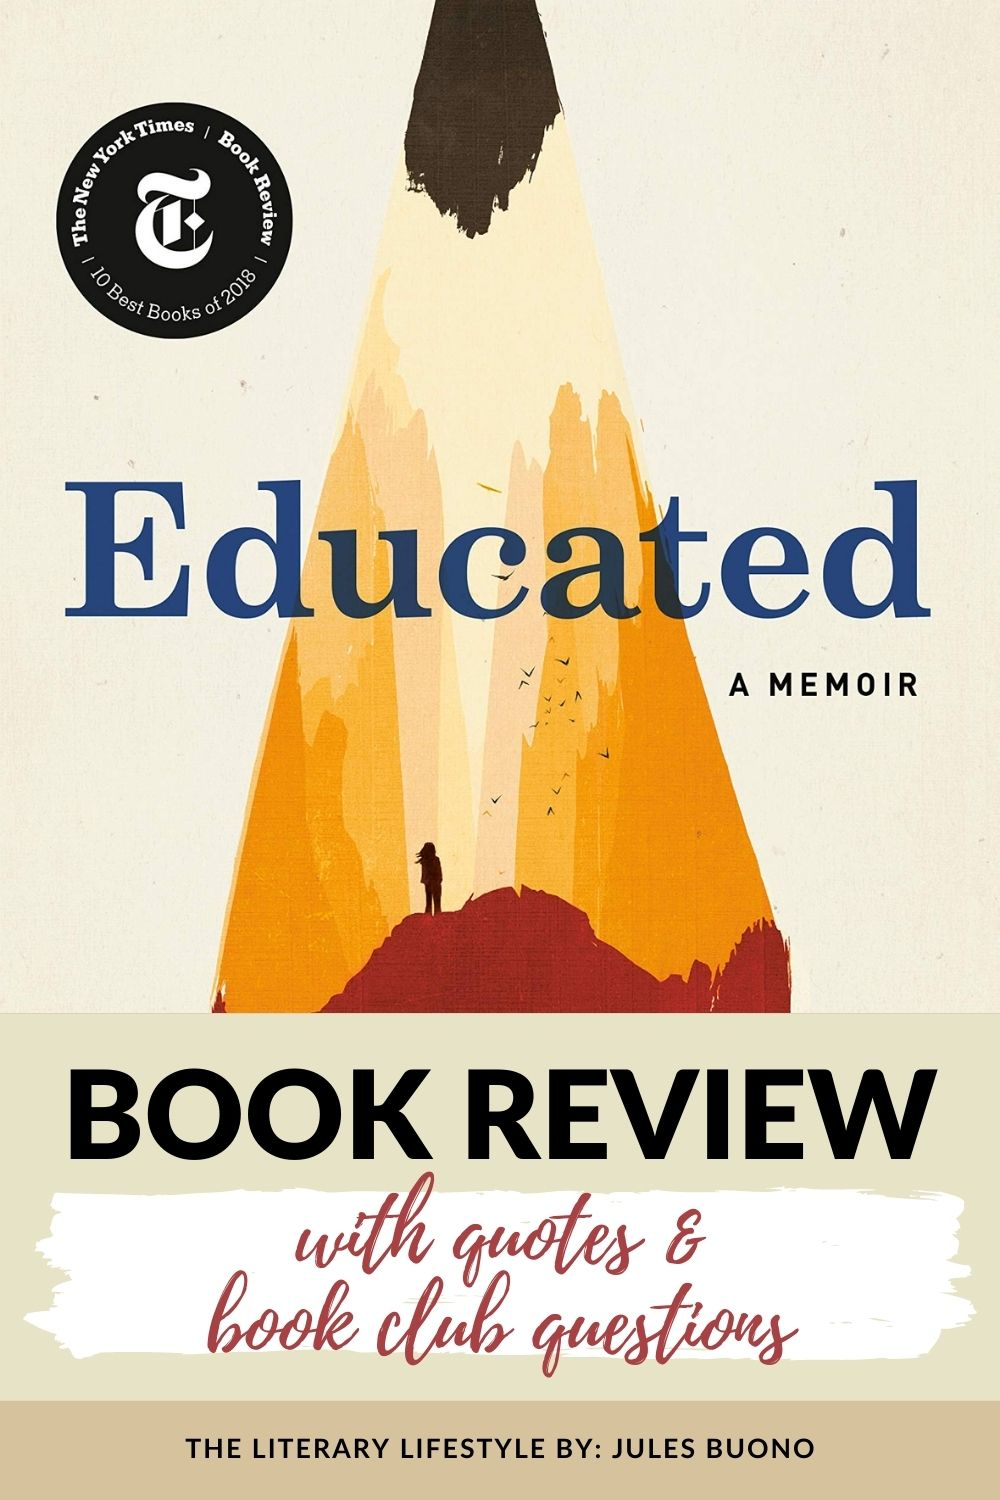 Book Review: Educated